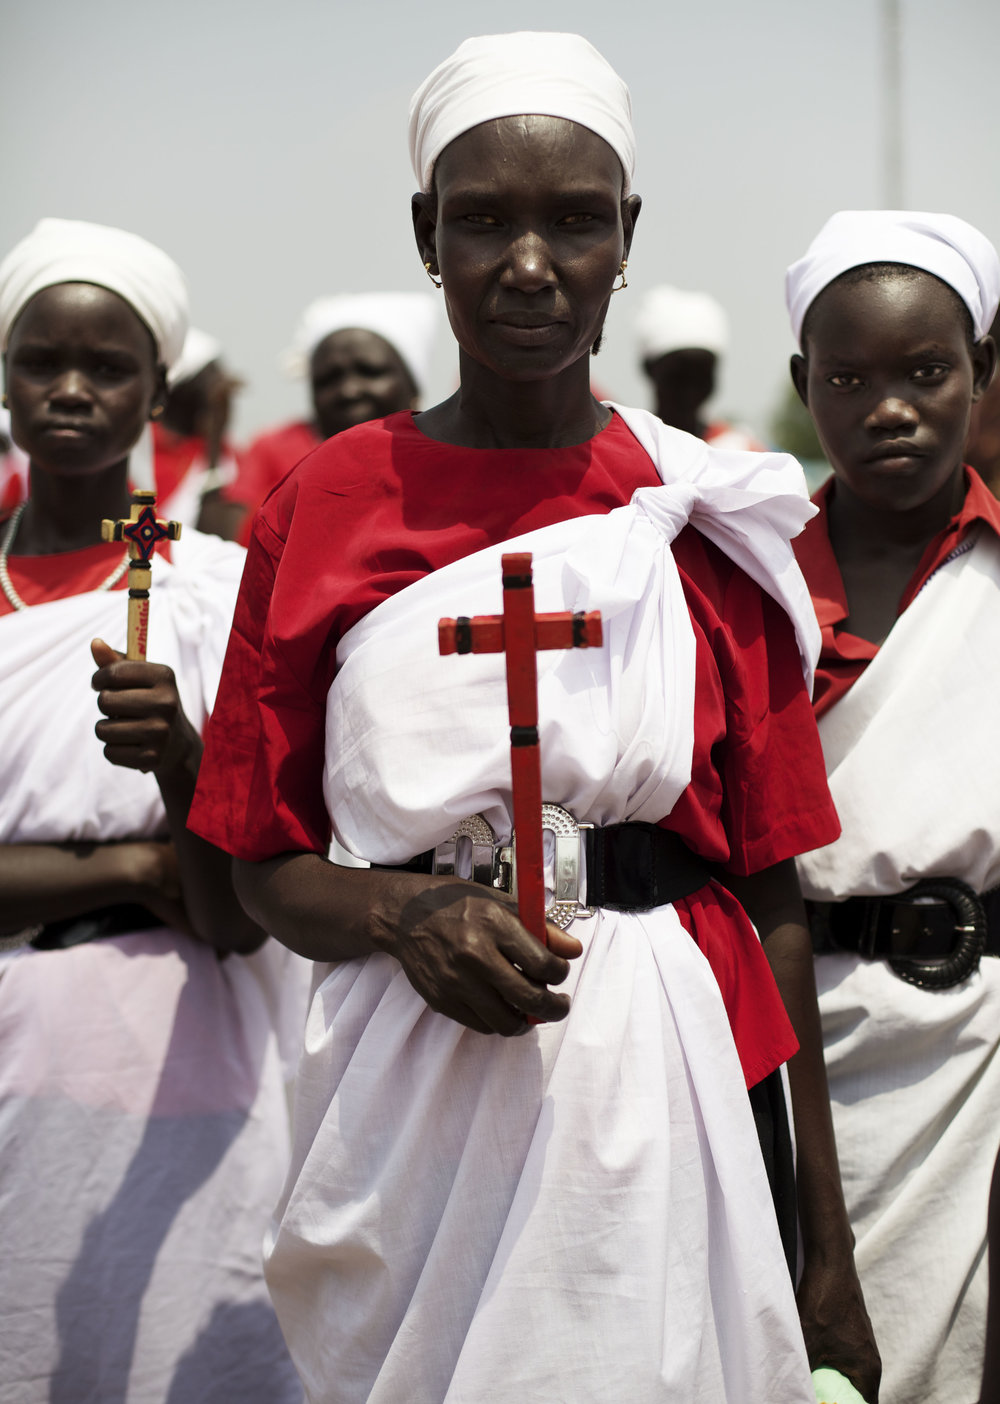 Women from Jonglei state pose for a photograph as they gather ahead of a rehearsal for independence celebrations in Juba, southern Sudan, Thursday, July 7, 2011. (AP Photo/David Azia)